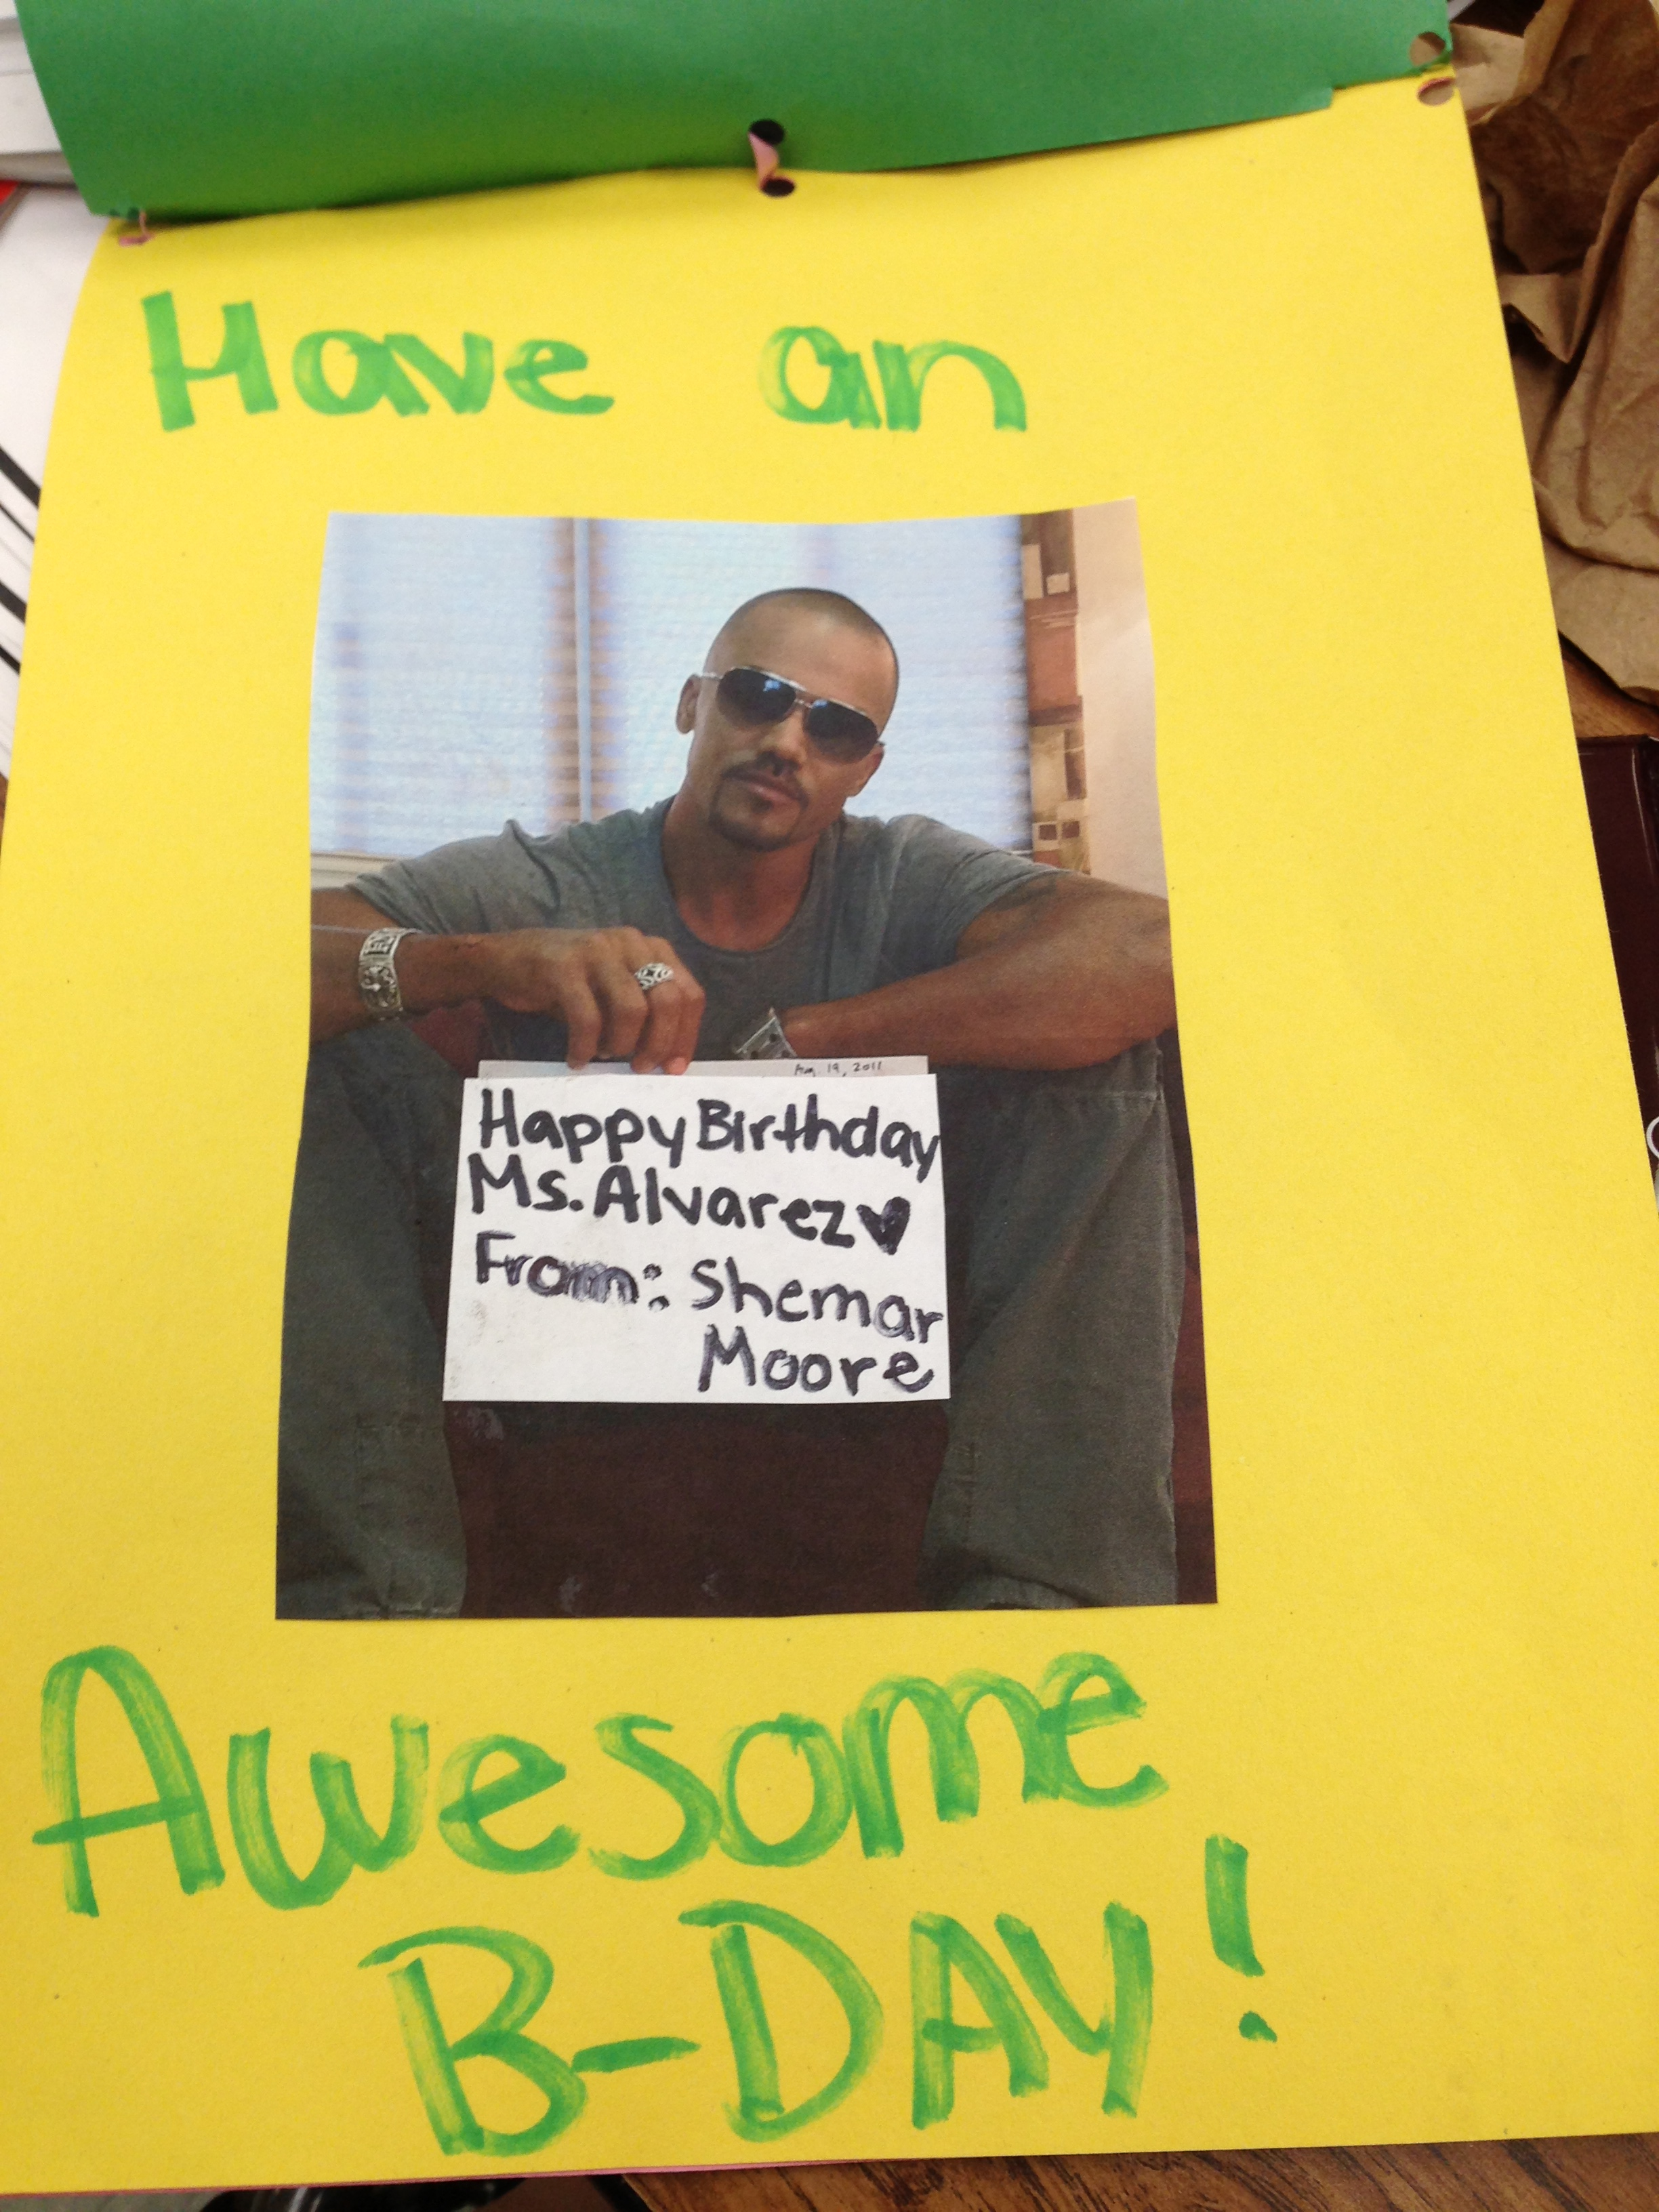 e7d68b6b7 Shemar Moore Wishes Nathasha Alvarez Happy Birthday | Audacious Lady